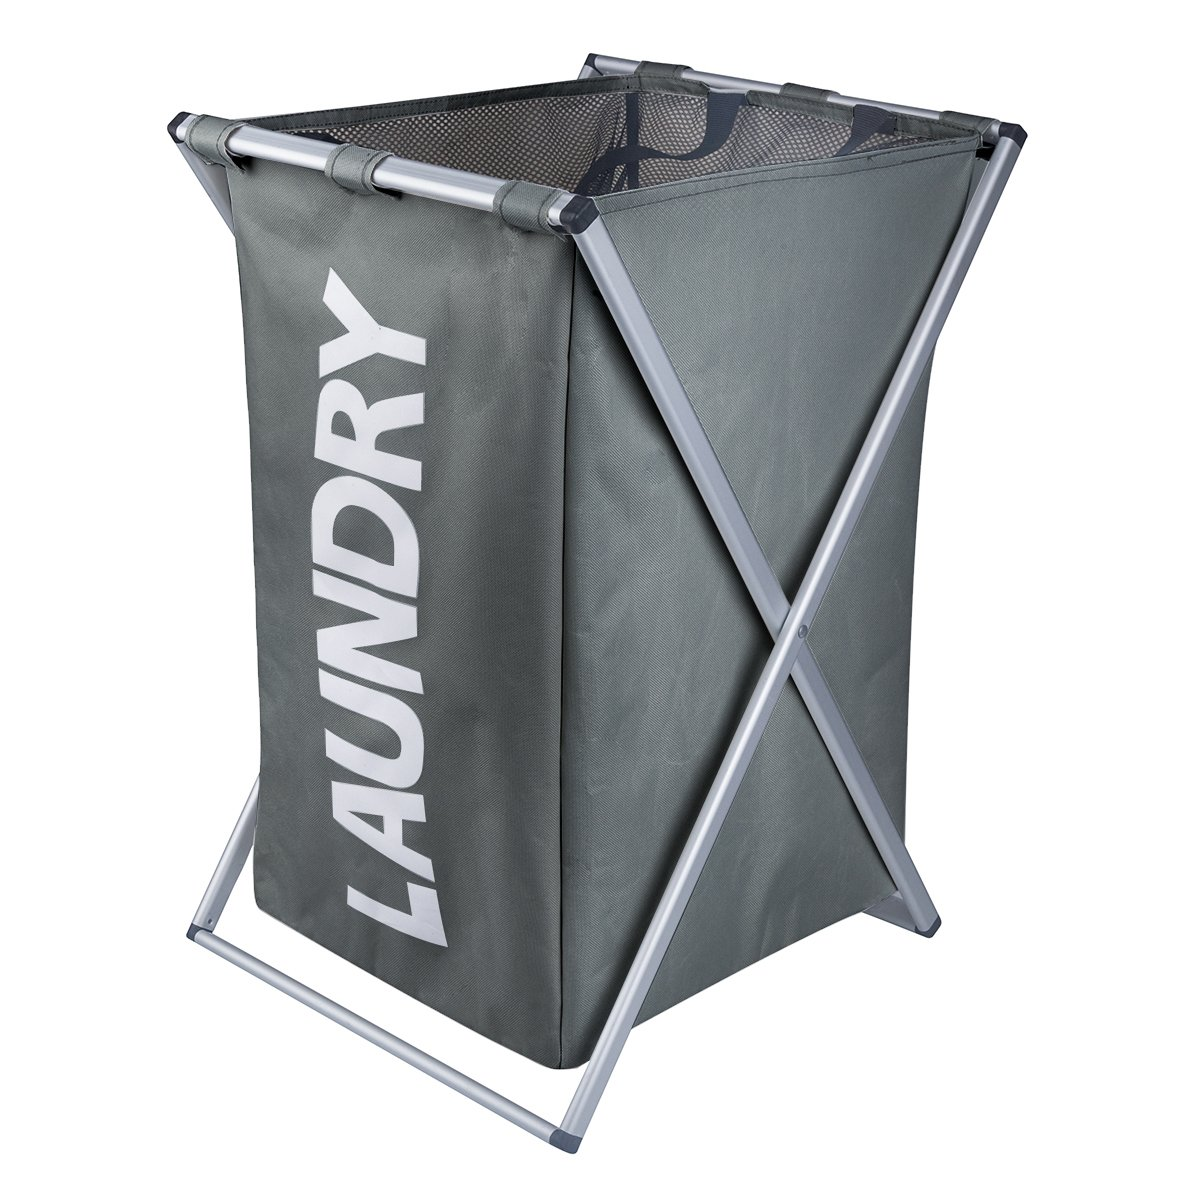 Chrislley X-frame Laundry Hamper Basket Dirty Clothes Laundry Basket Home Laundry Hamper Sorter Laundry Bag (Dark Gray Hamper)